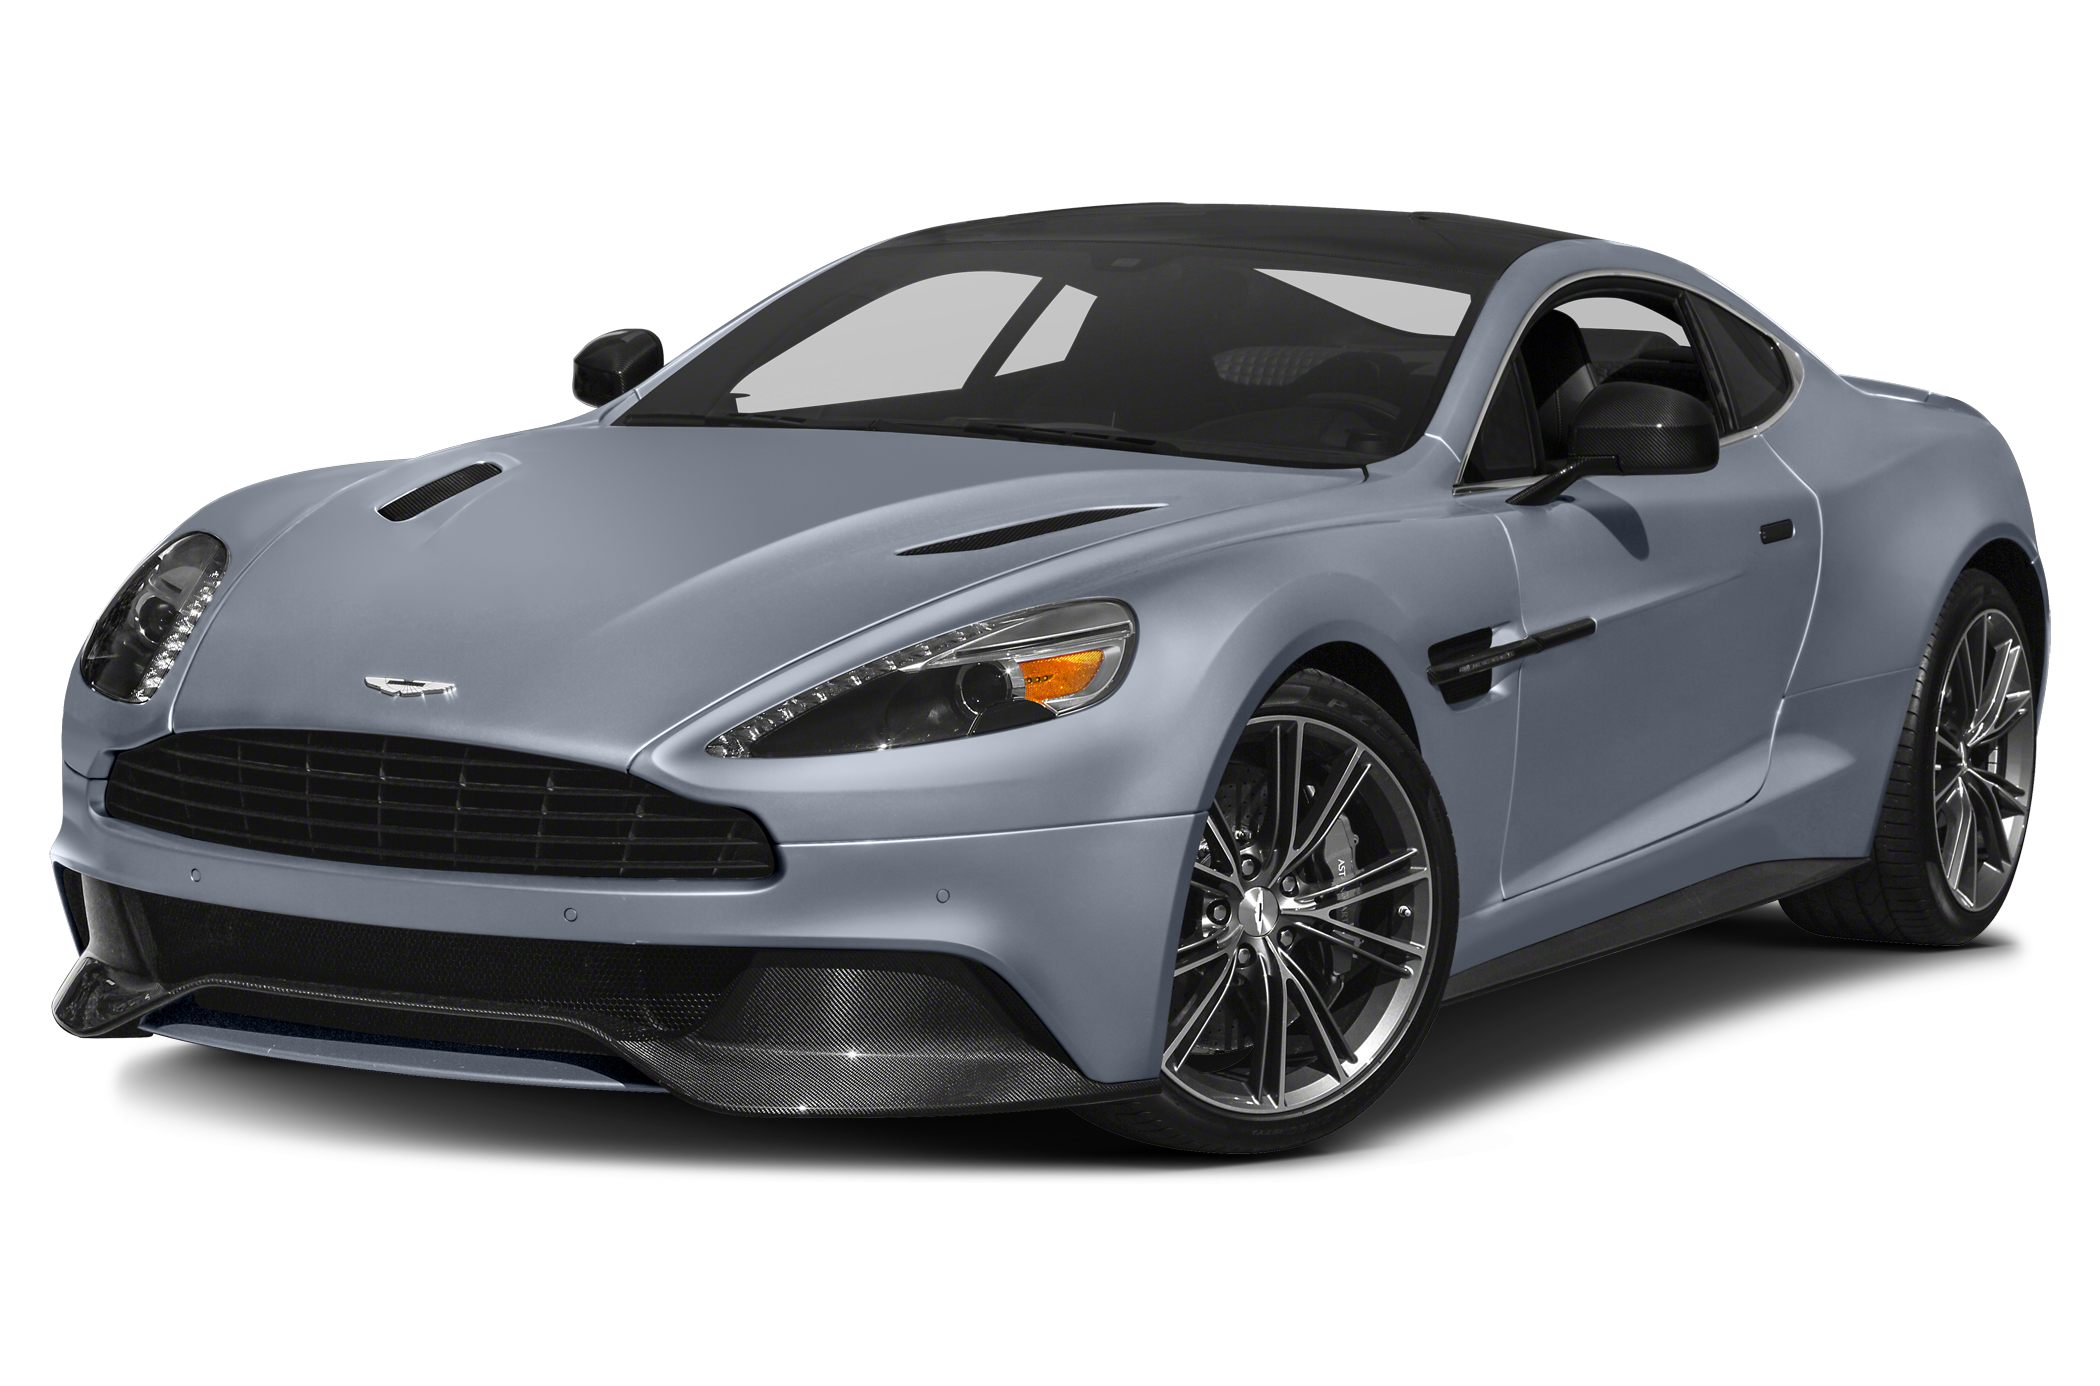 2014 Aston Martin Vanquish Base Coupe for sale in Beverly Hills for $209,990 with 7,490 miles